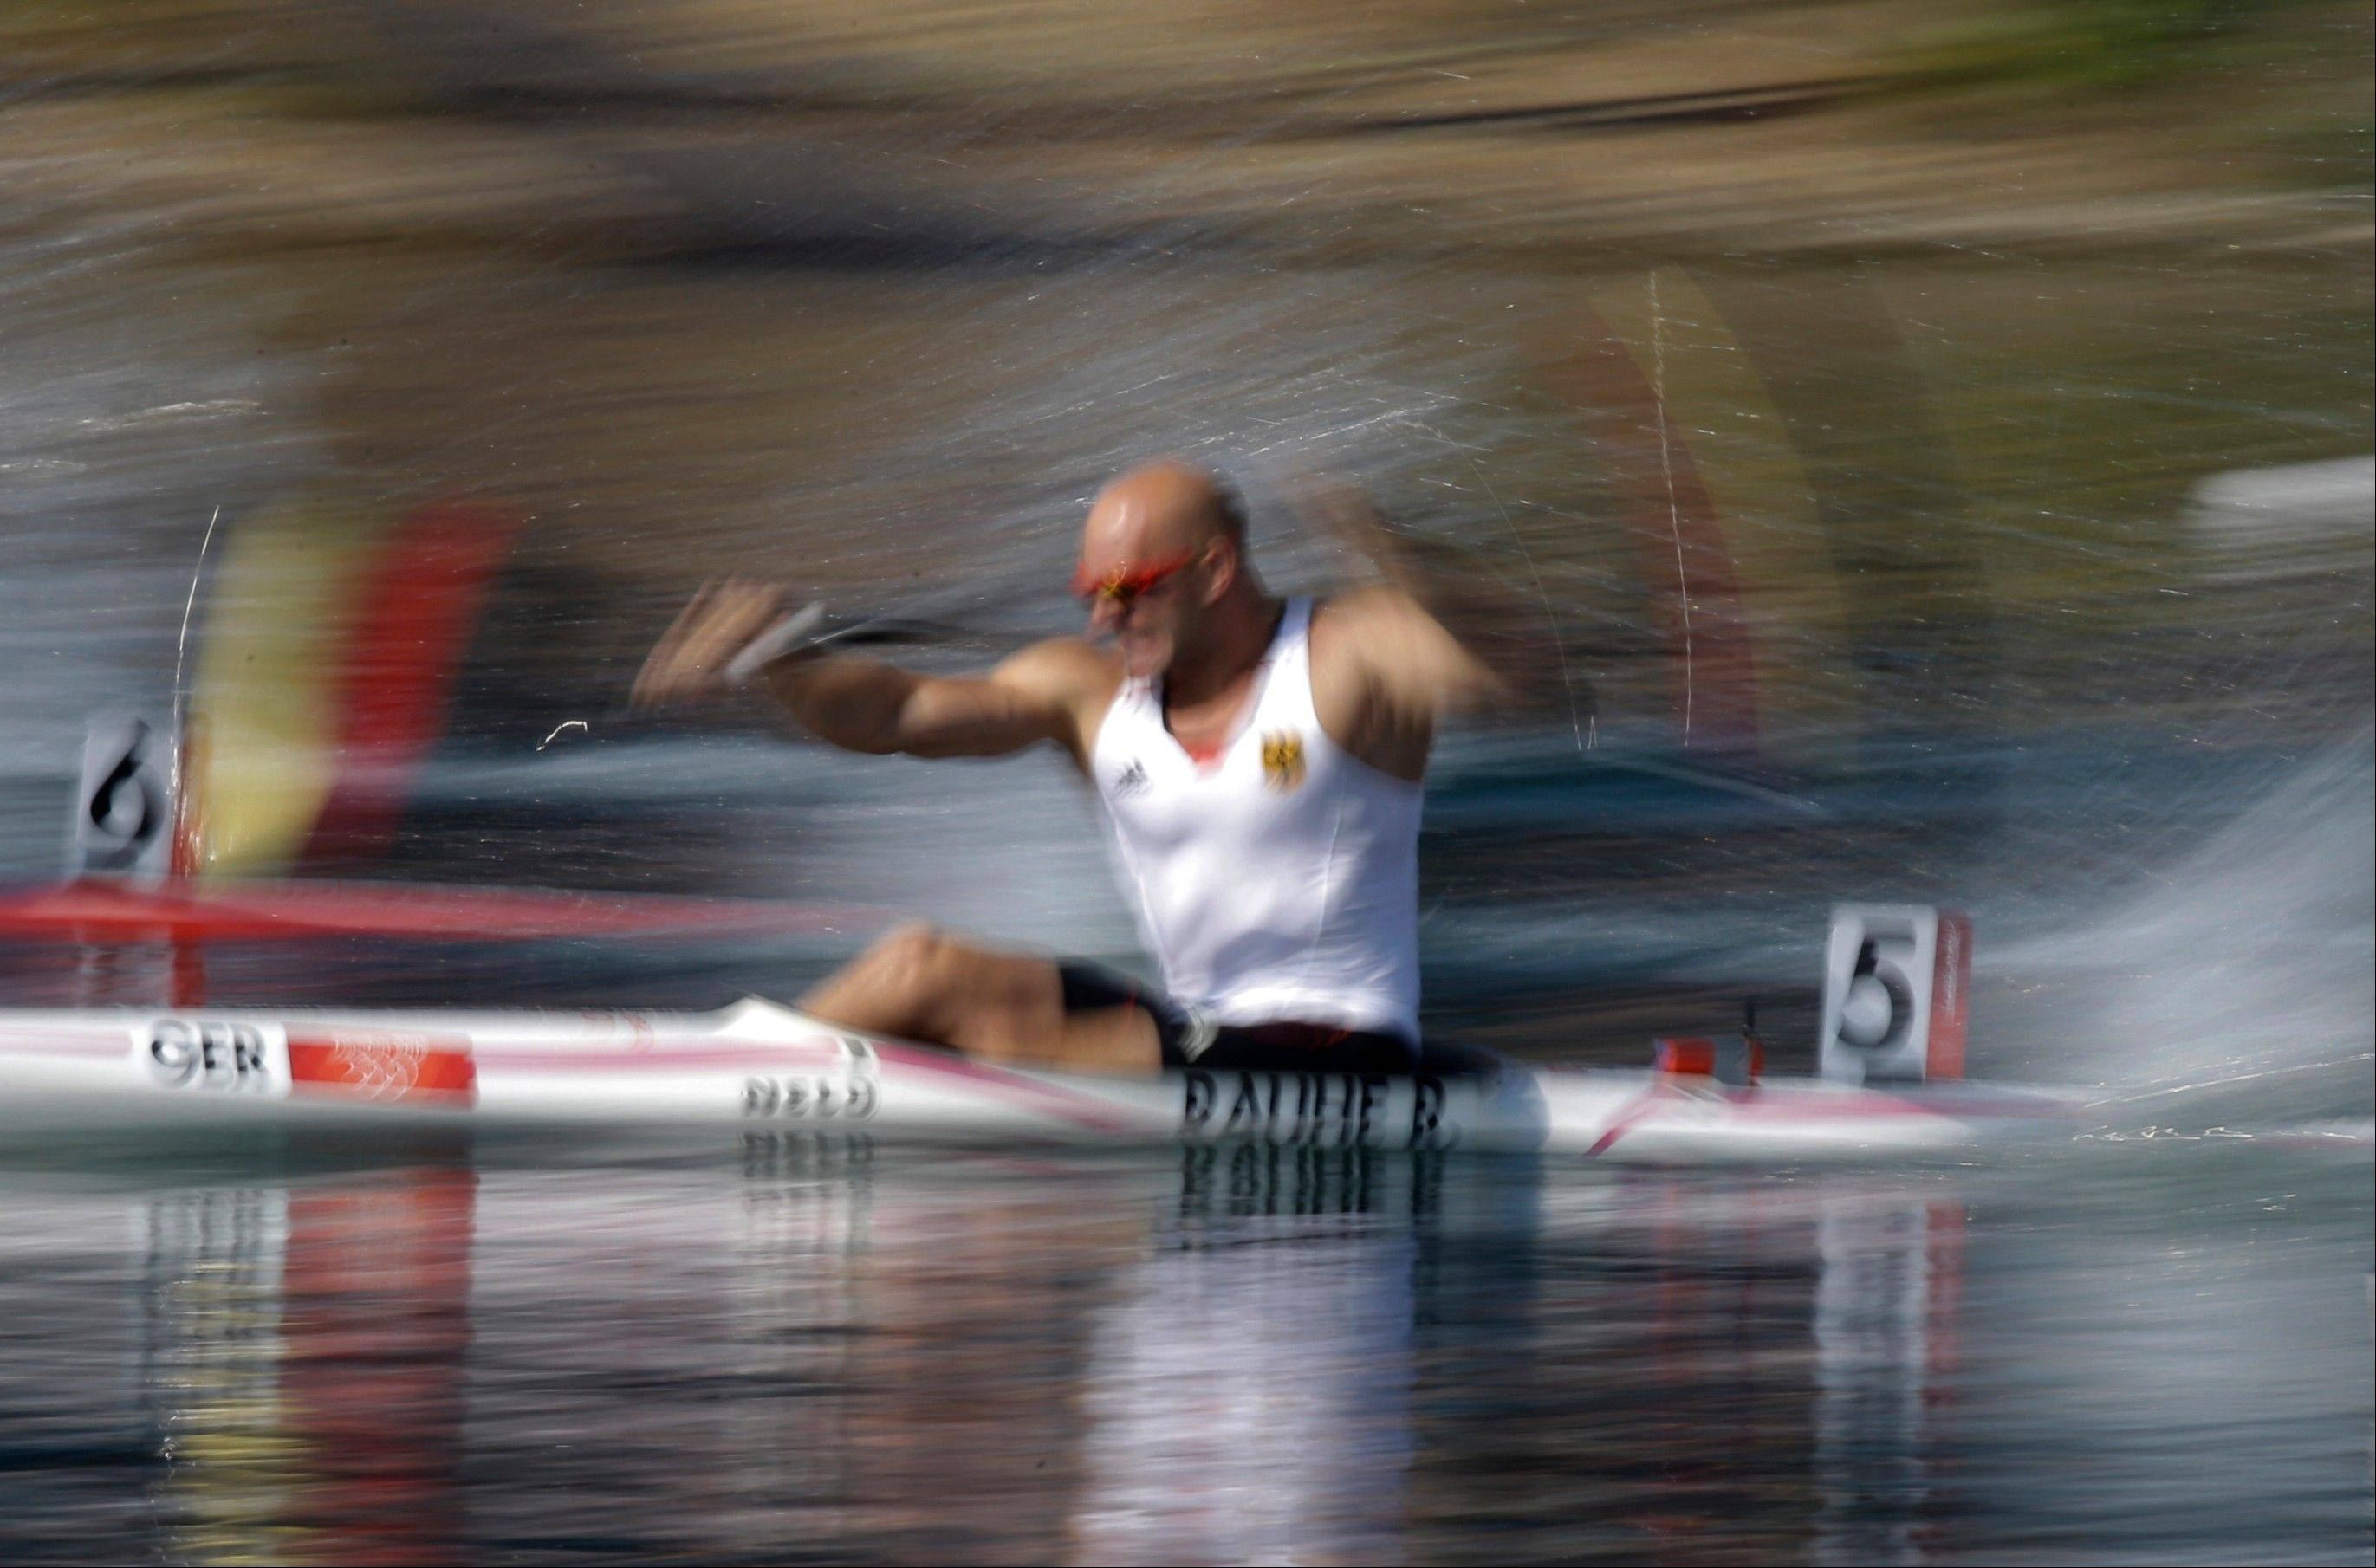 Germany's Ronald Rahue paddles in a men's kayak single 200m heat in Eton Dorney, near Windsor, England, at the 2012 Summer Olympics, Friday, Aug. 10, 2012.